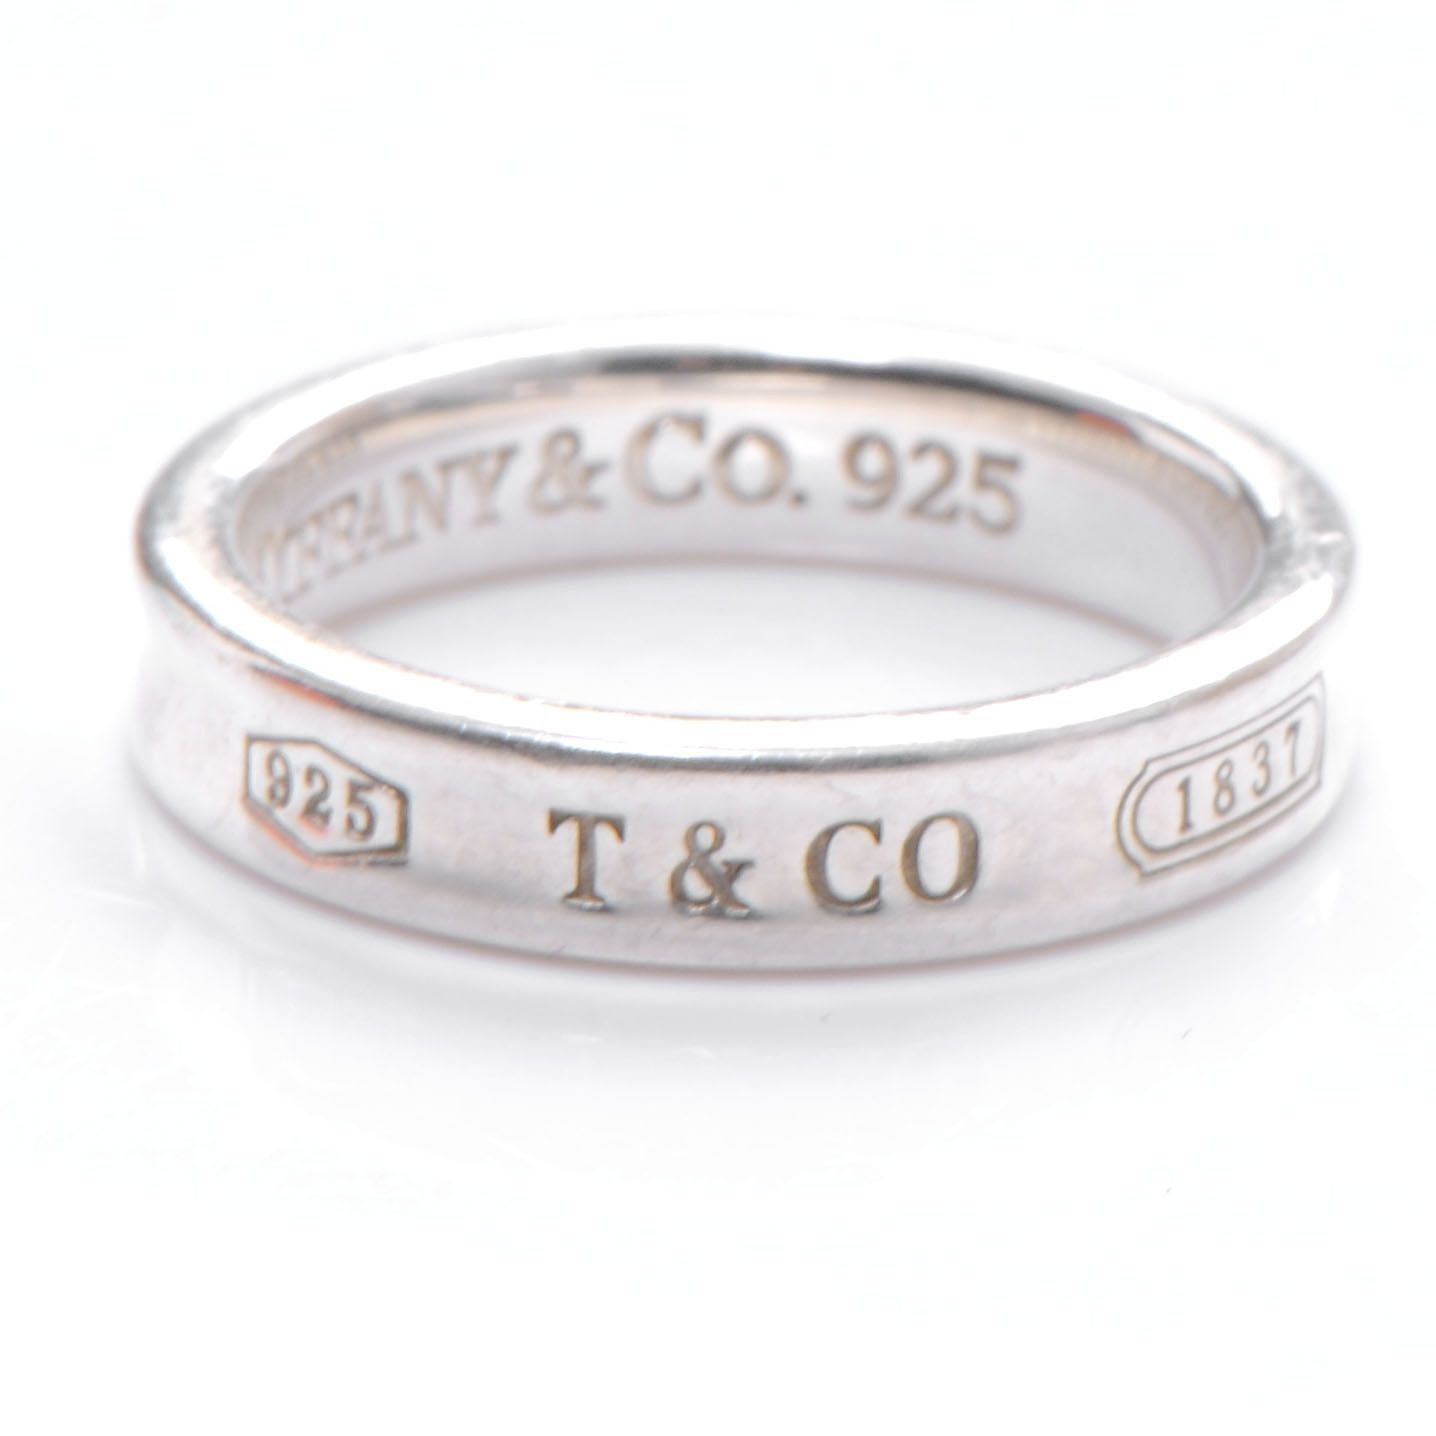 866c2b782 Tiffany and Co 1837 Sterling Silver 925 Ring Metal: 925 sterling silver size  8 Pre-owned: In good condition